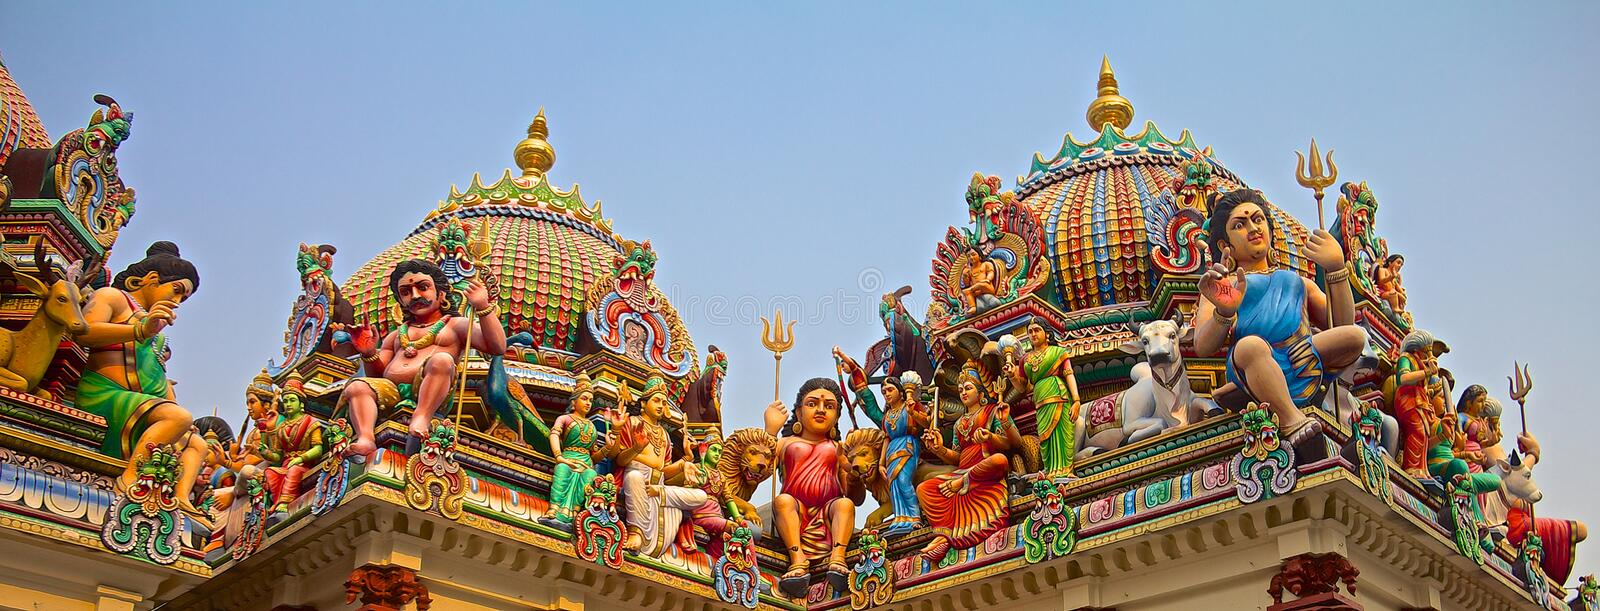 Hindu gods on a temple roof stock photography